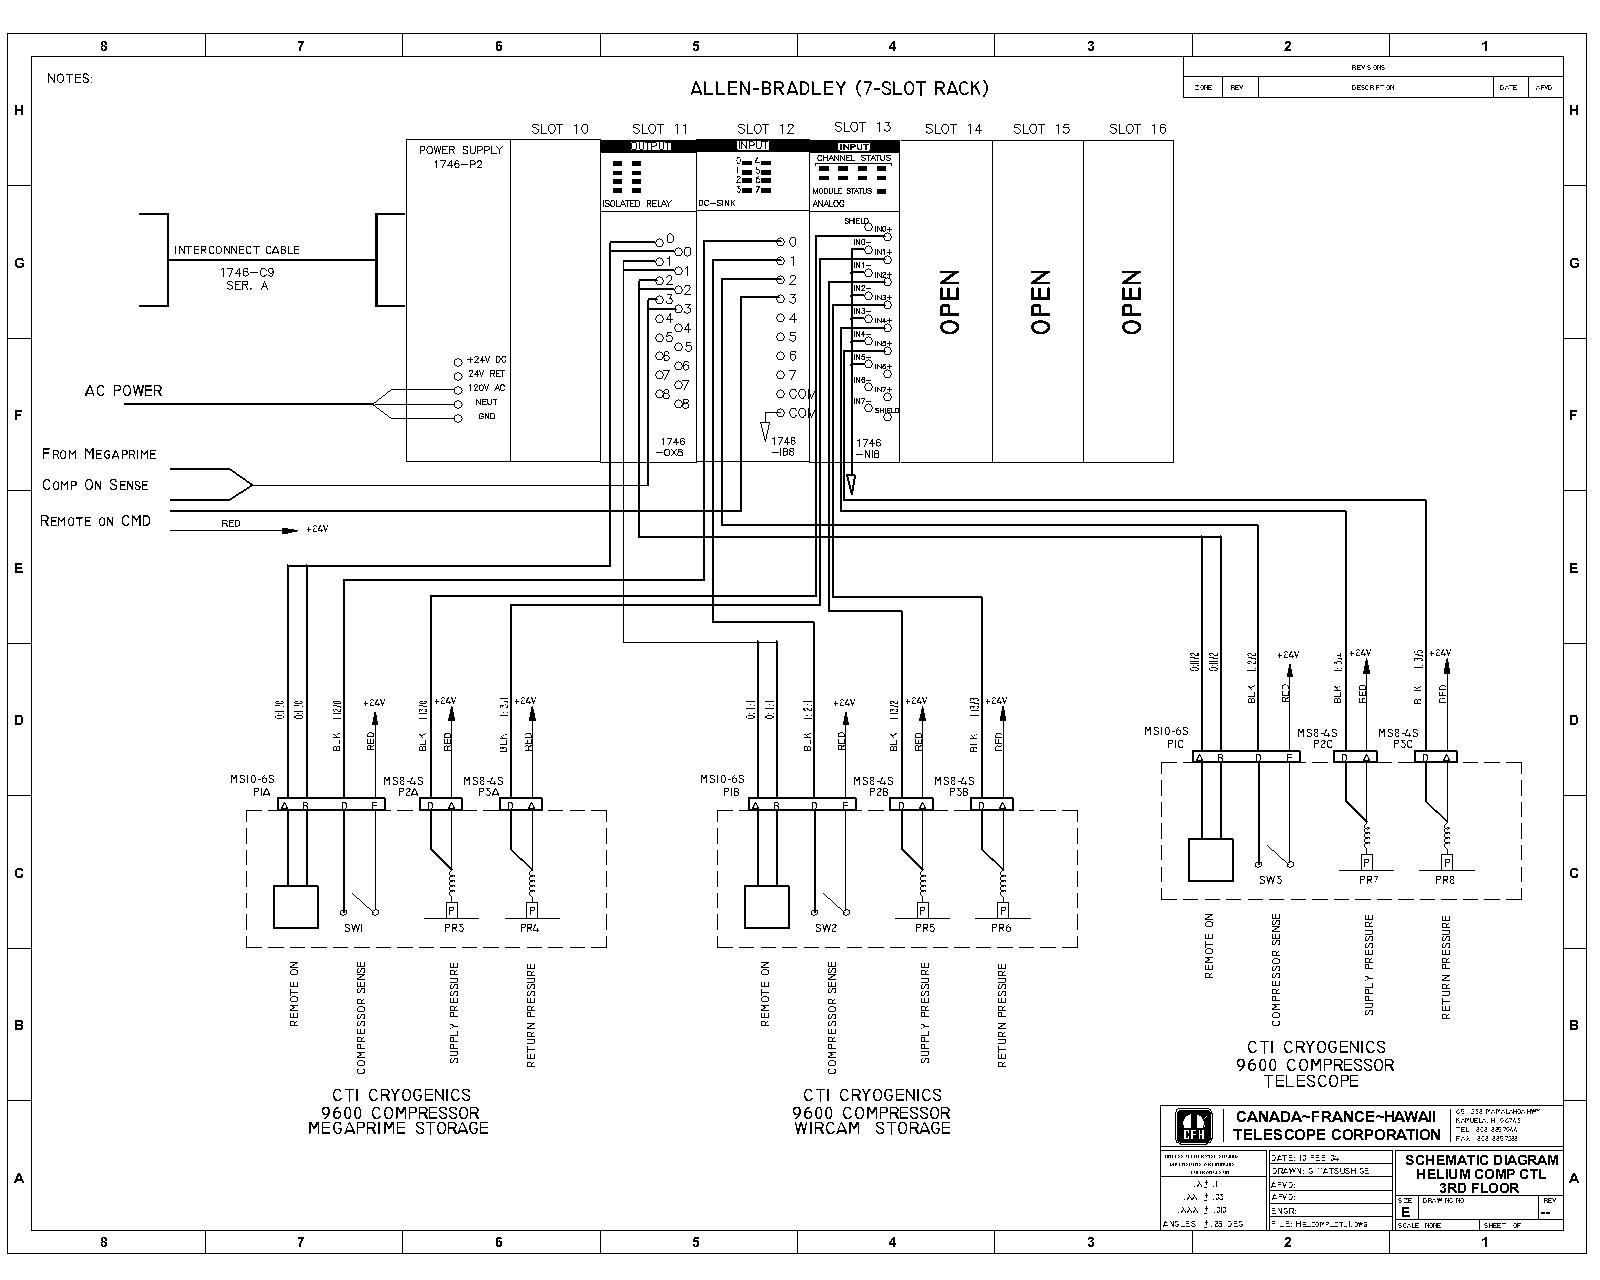 Wiring Diagram Outlets Beautiful Wiring Diagram Outlets Splendid Line Wiring Diagram Help Signa Home Electrical Wiring Electrical Wiring Diagram House Wiring